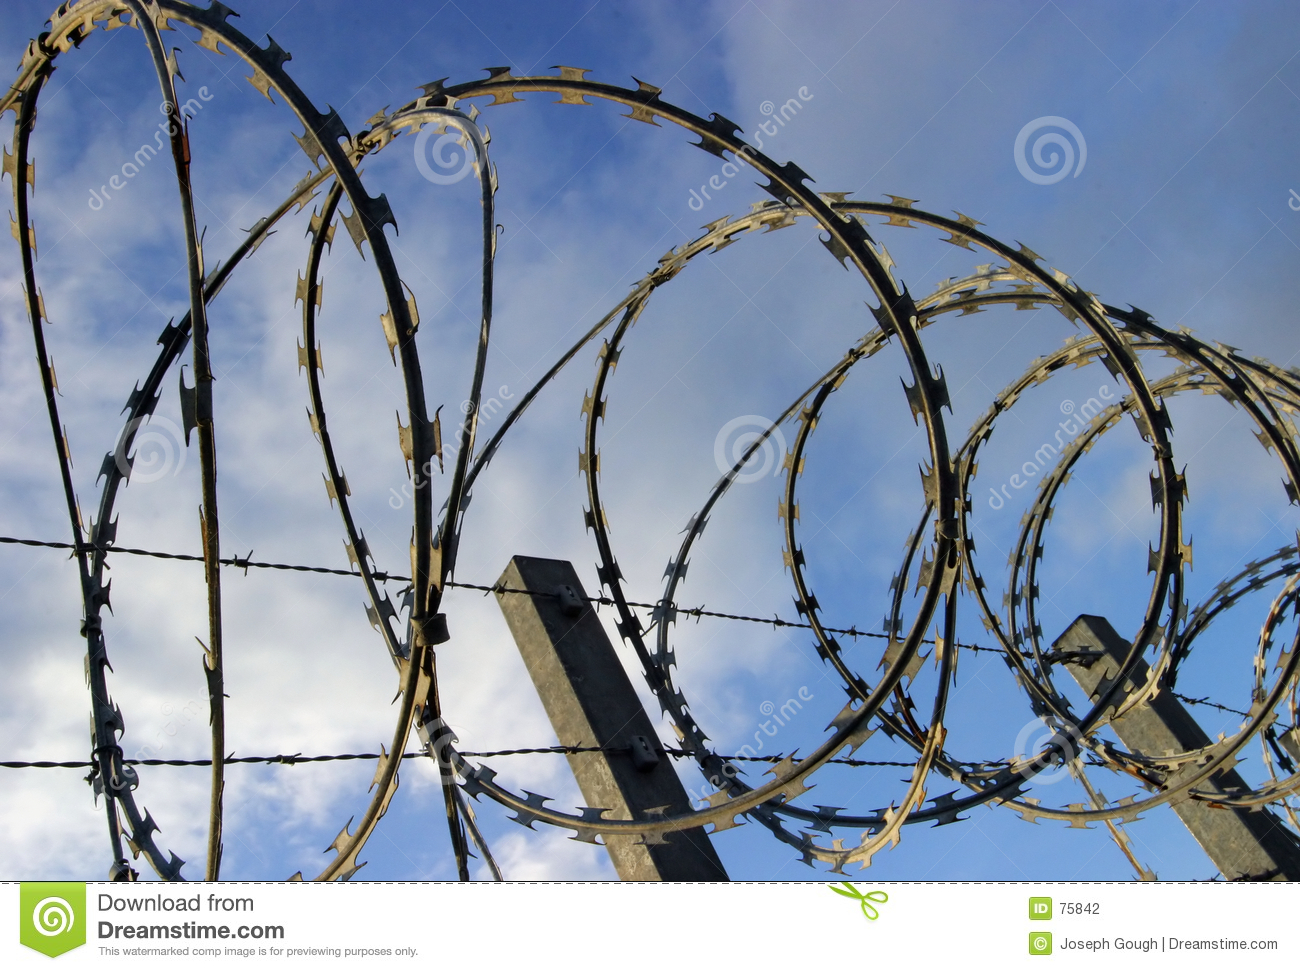 Barbed razor security wire